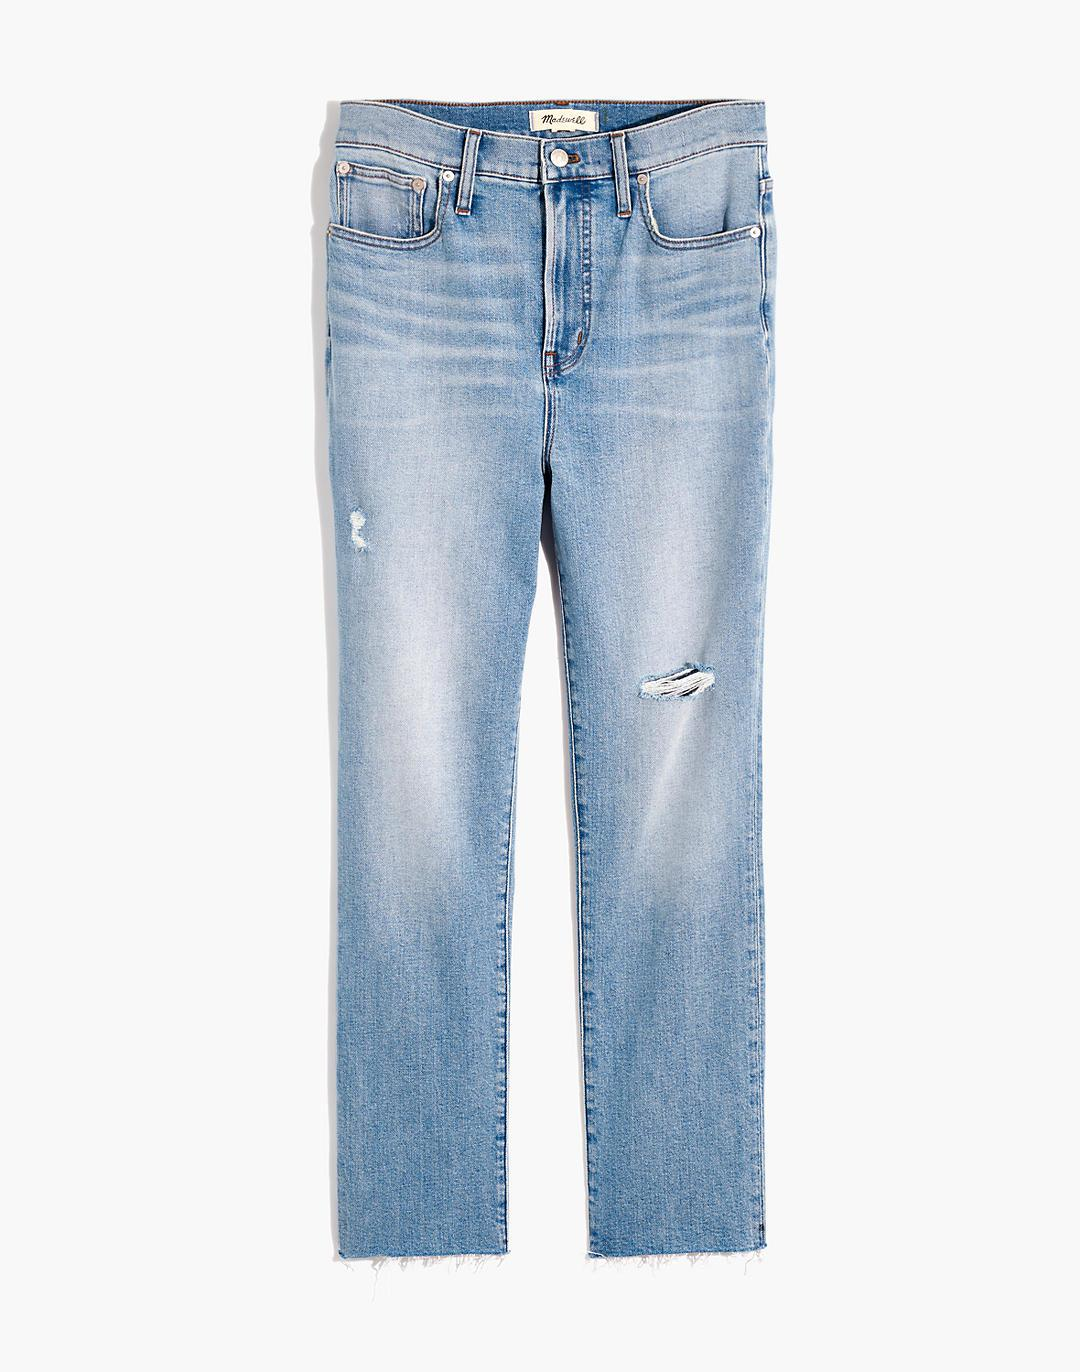 The Perfect Vintage Jean in Coffey Wash: Worn-In Edition 5